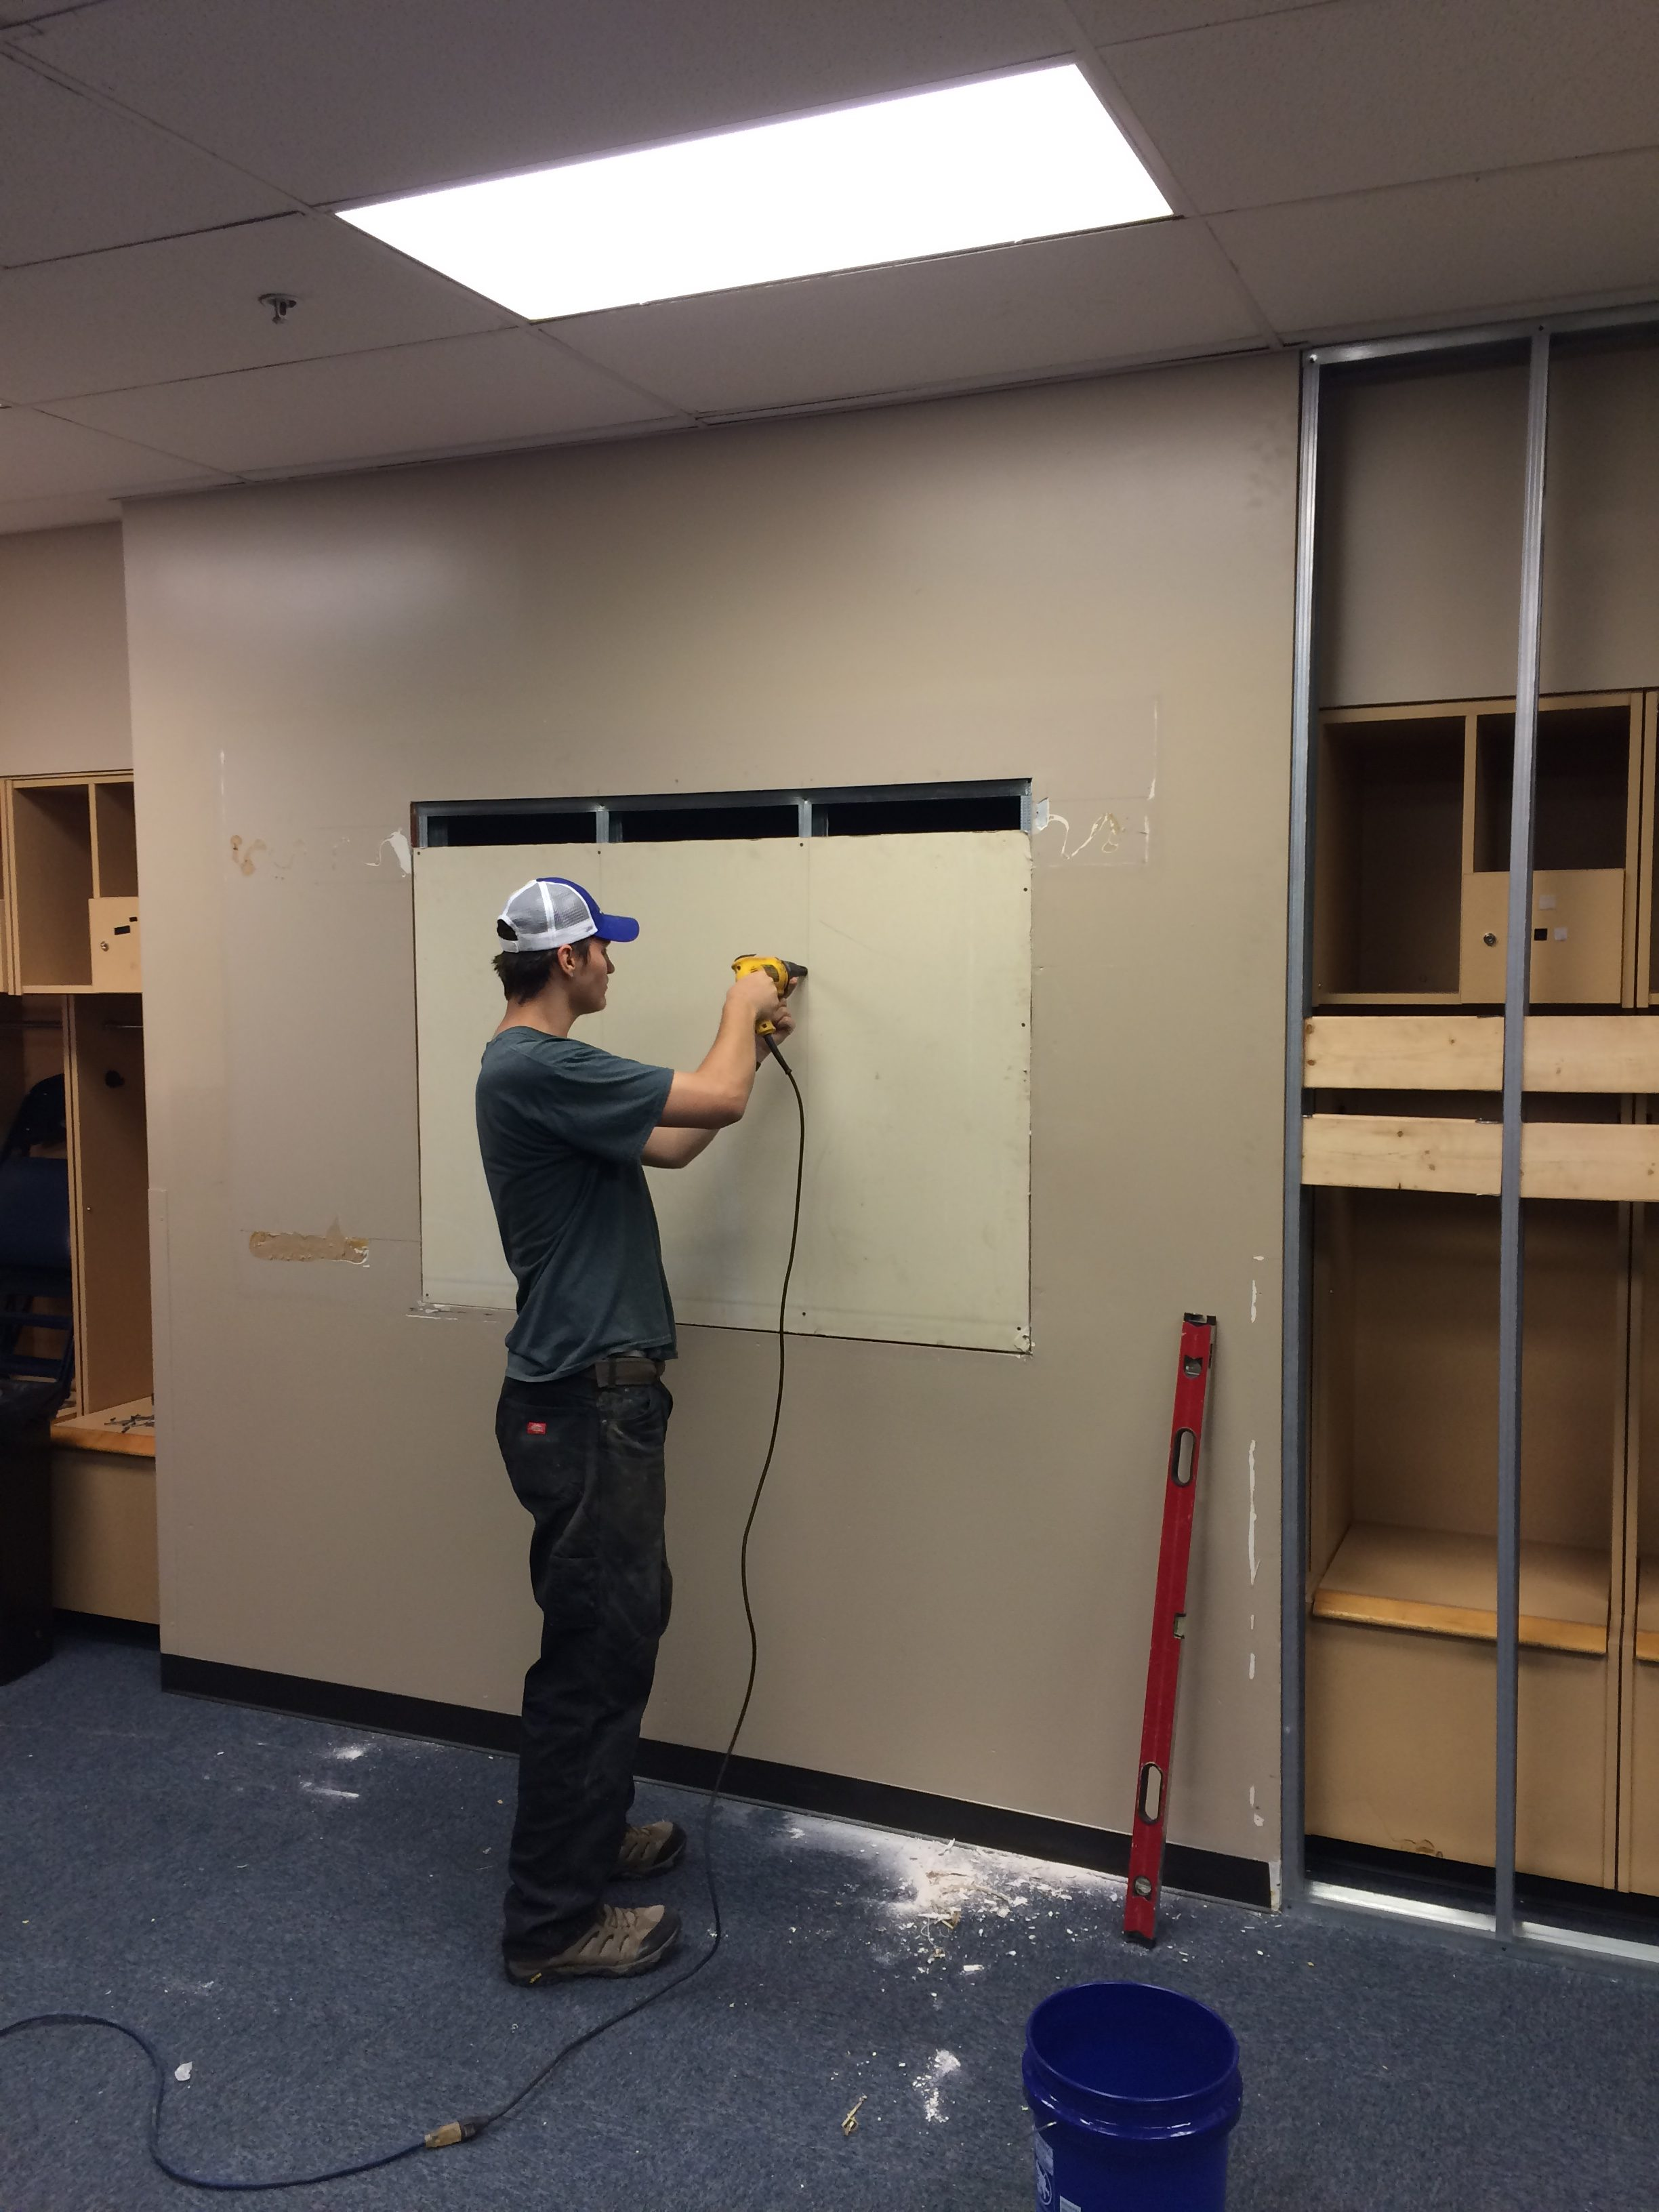 FedEx-Forum-locker-room-tv-alcove-getting-closed-up-e1537085869547